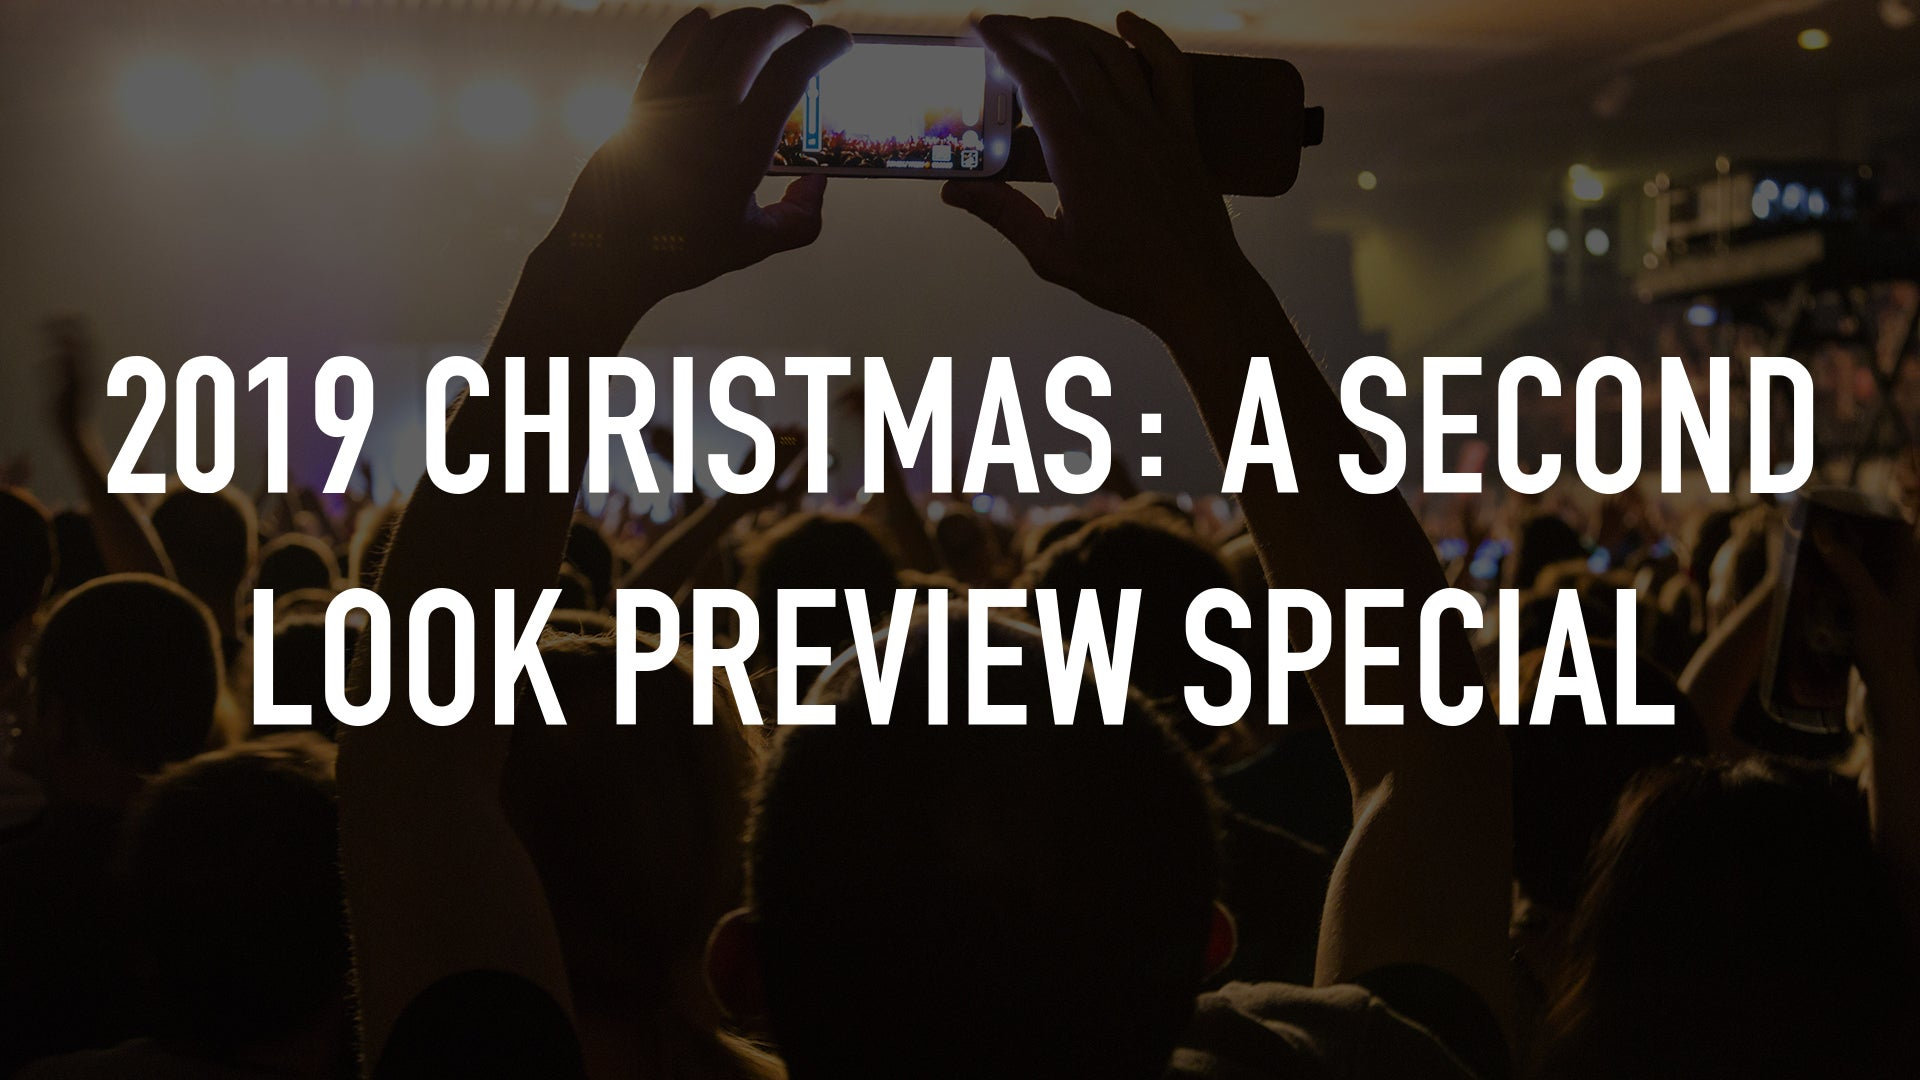 2019 Christmas: A Second Look Preview Special